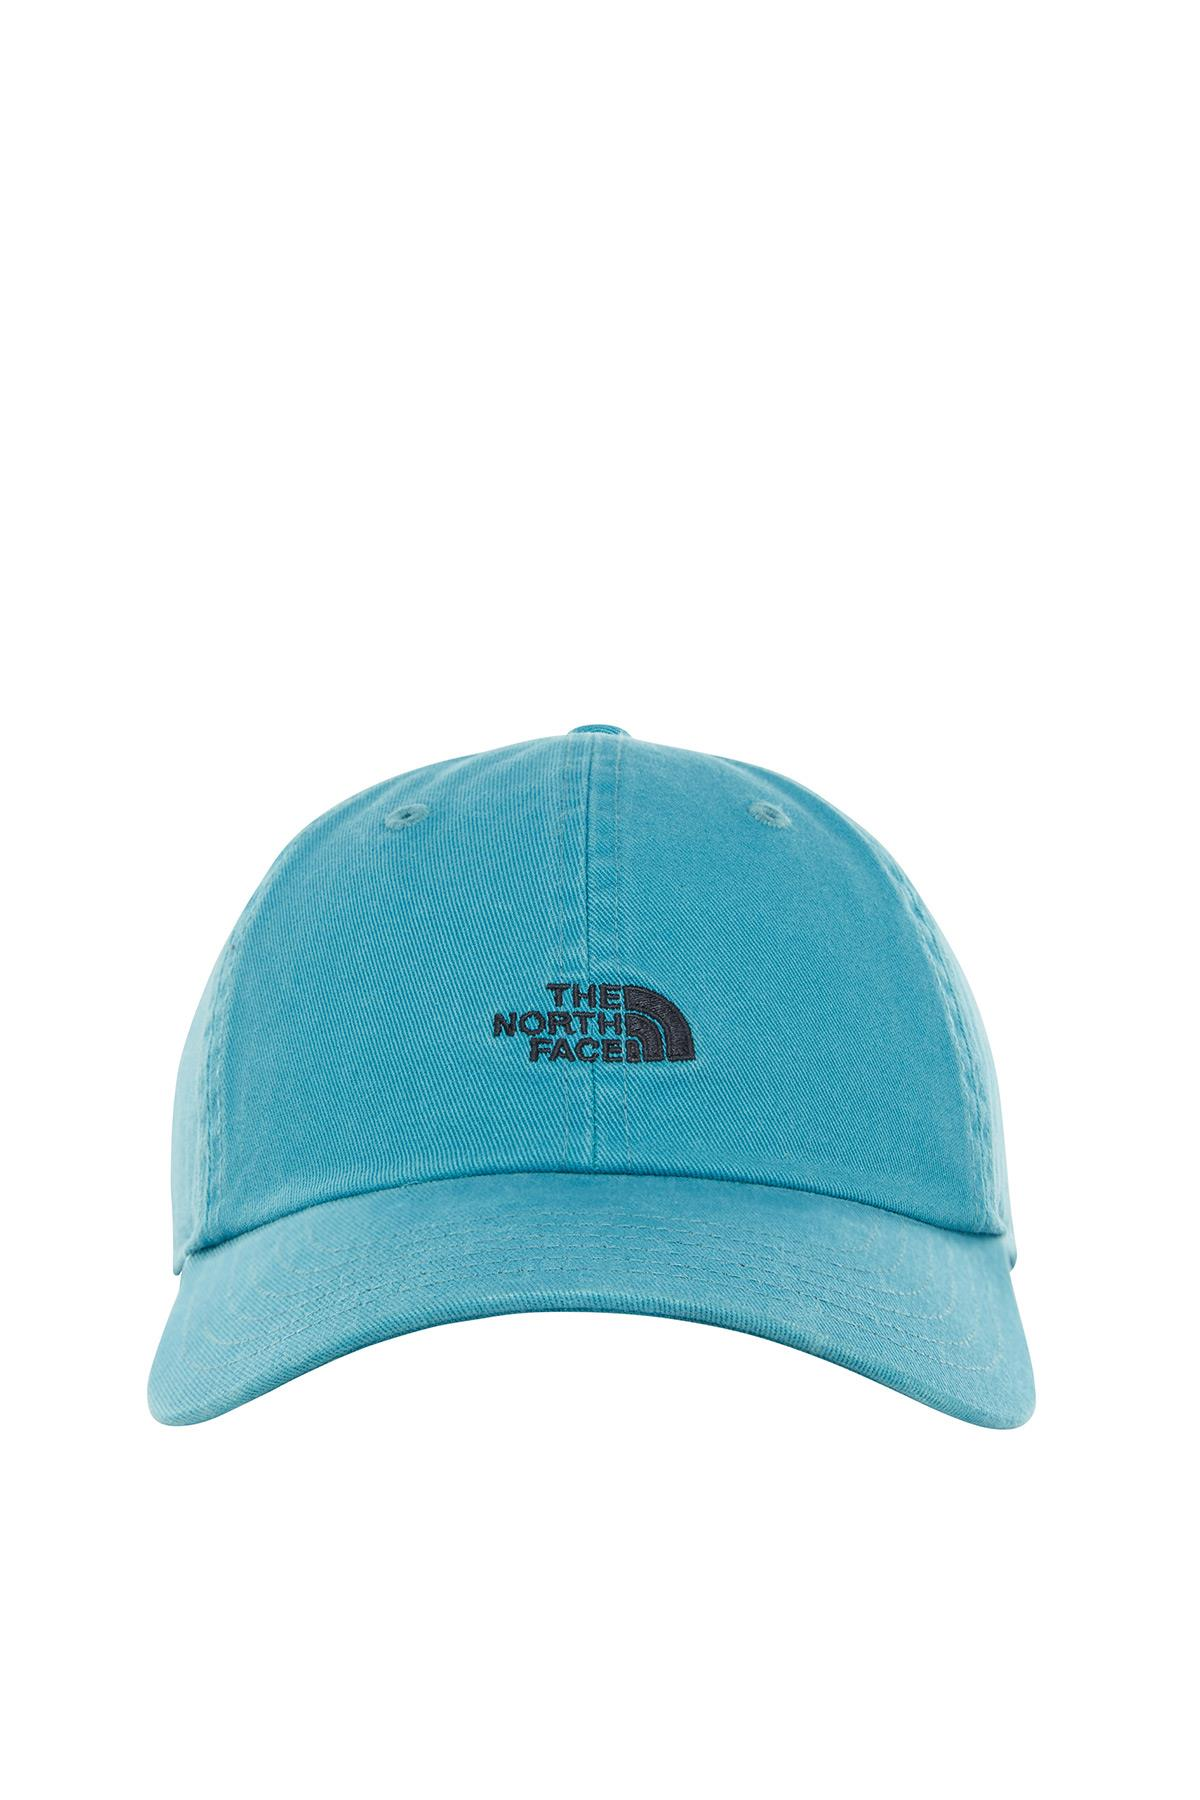 The Northface Washed Norm Hat T93Fkna7J